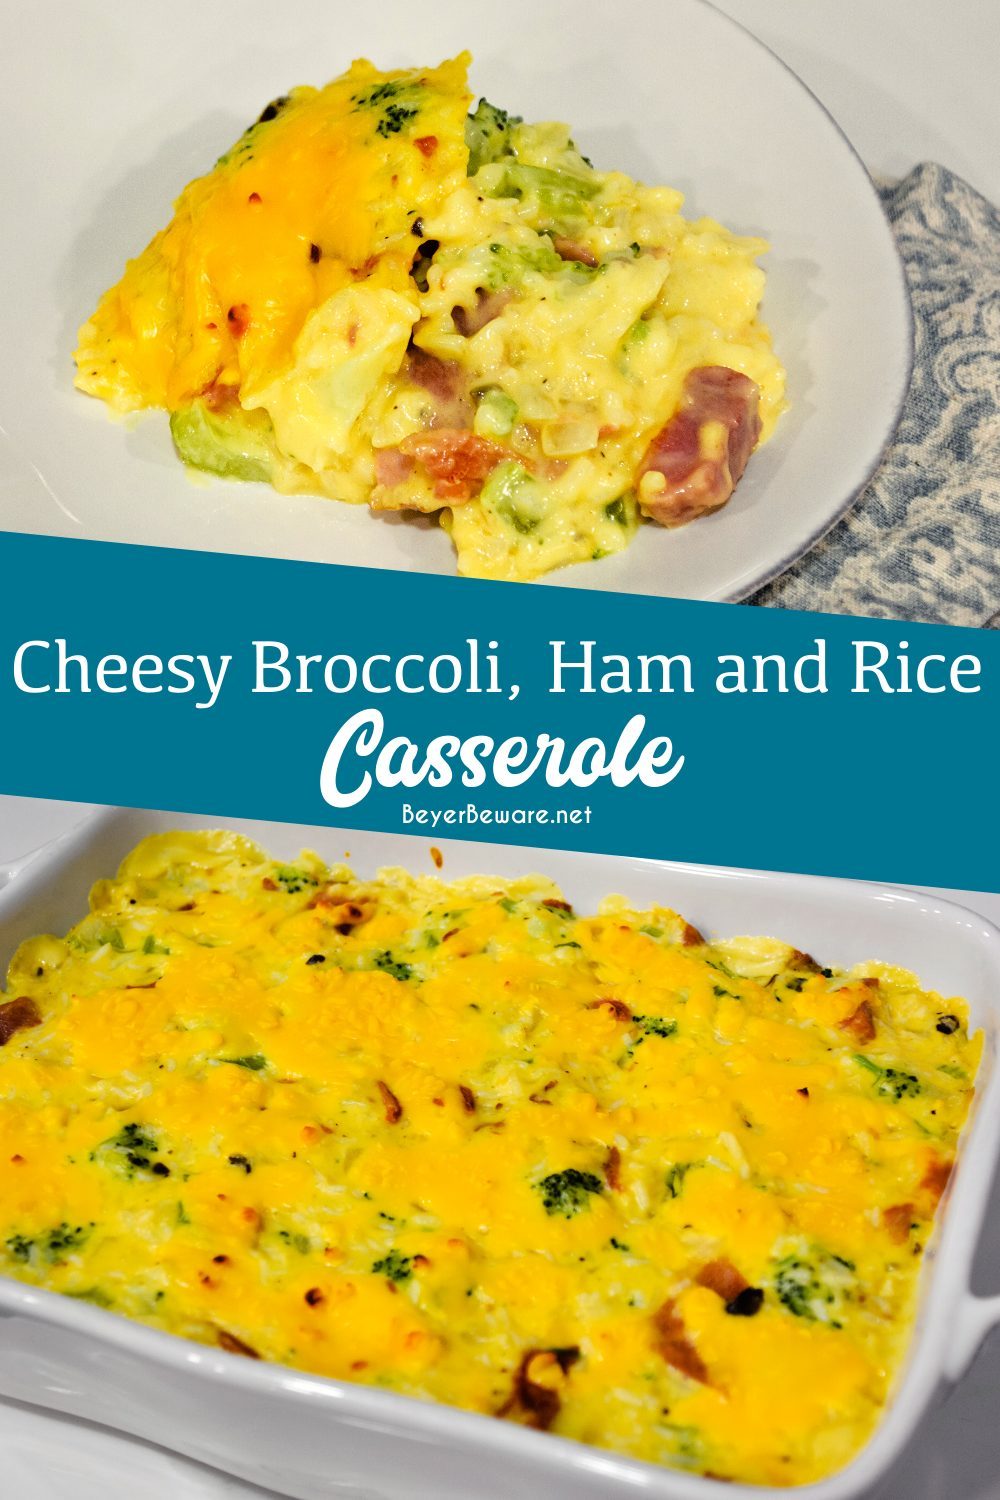 Cheesy ham, broccoli, and rice casserole was a delicious switch to a traditional chicken casserole.